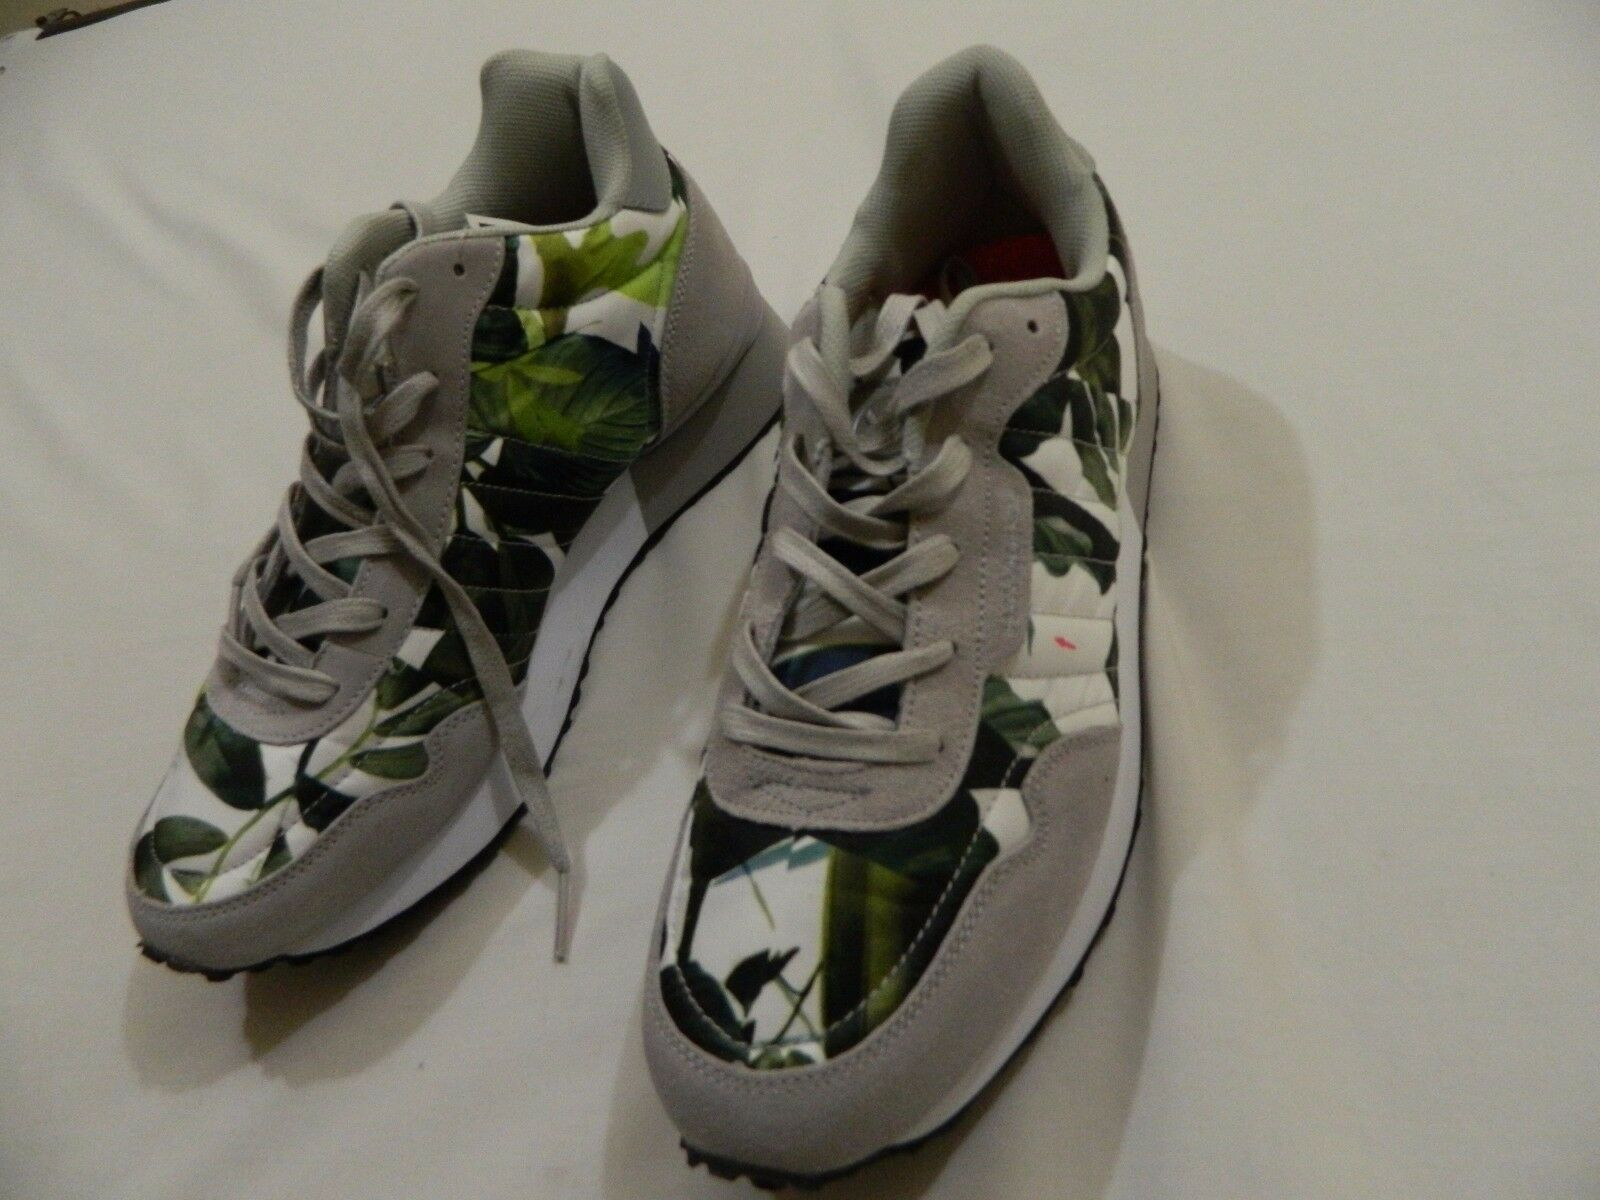 M51 Hawke Fashion & Co Warren Mid Fashion Hawke Floral Flowers Leaf Sneaker MEN'S Größe 10.5 fb0037